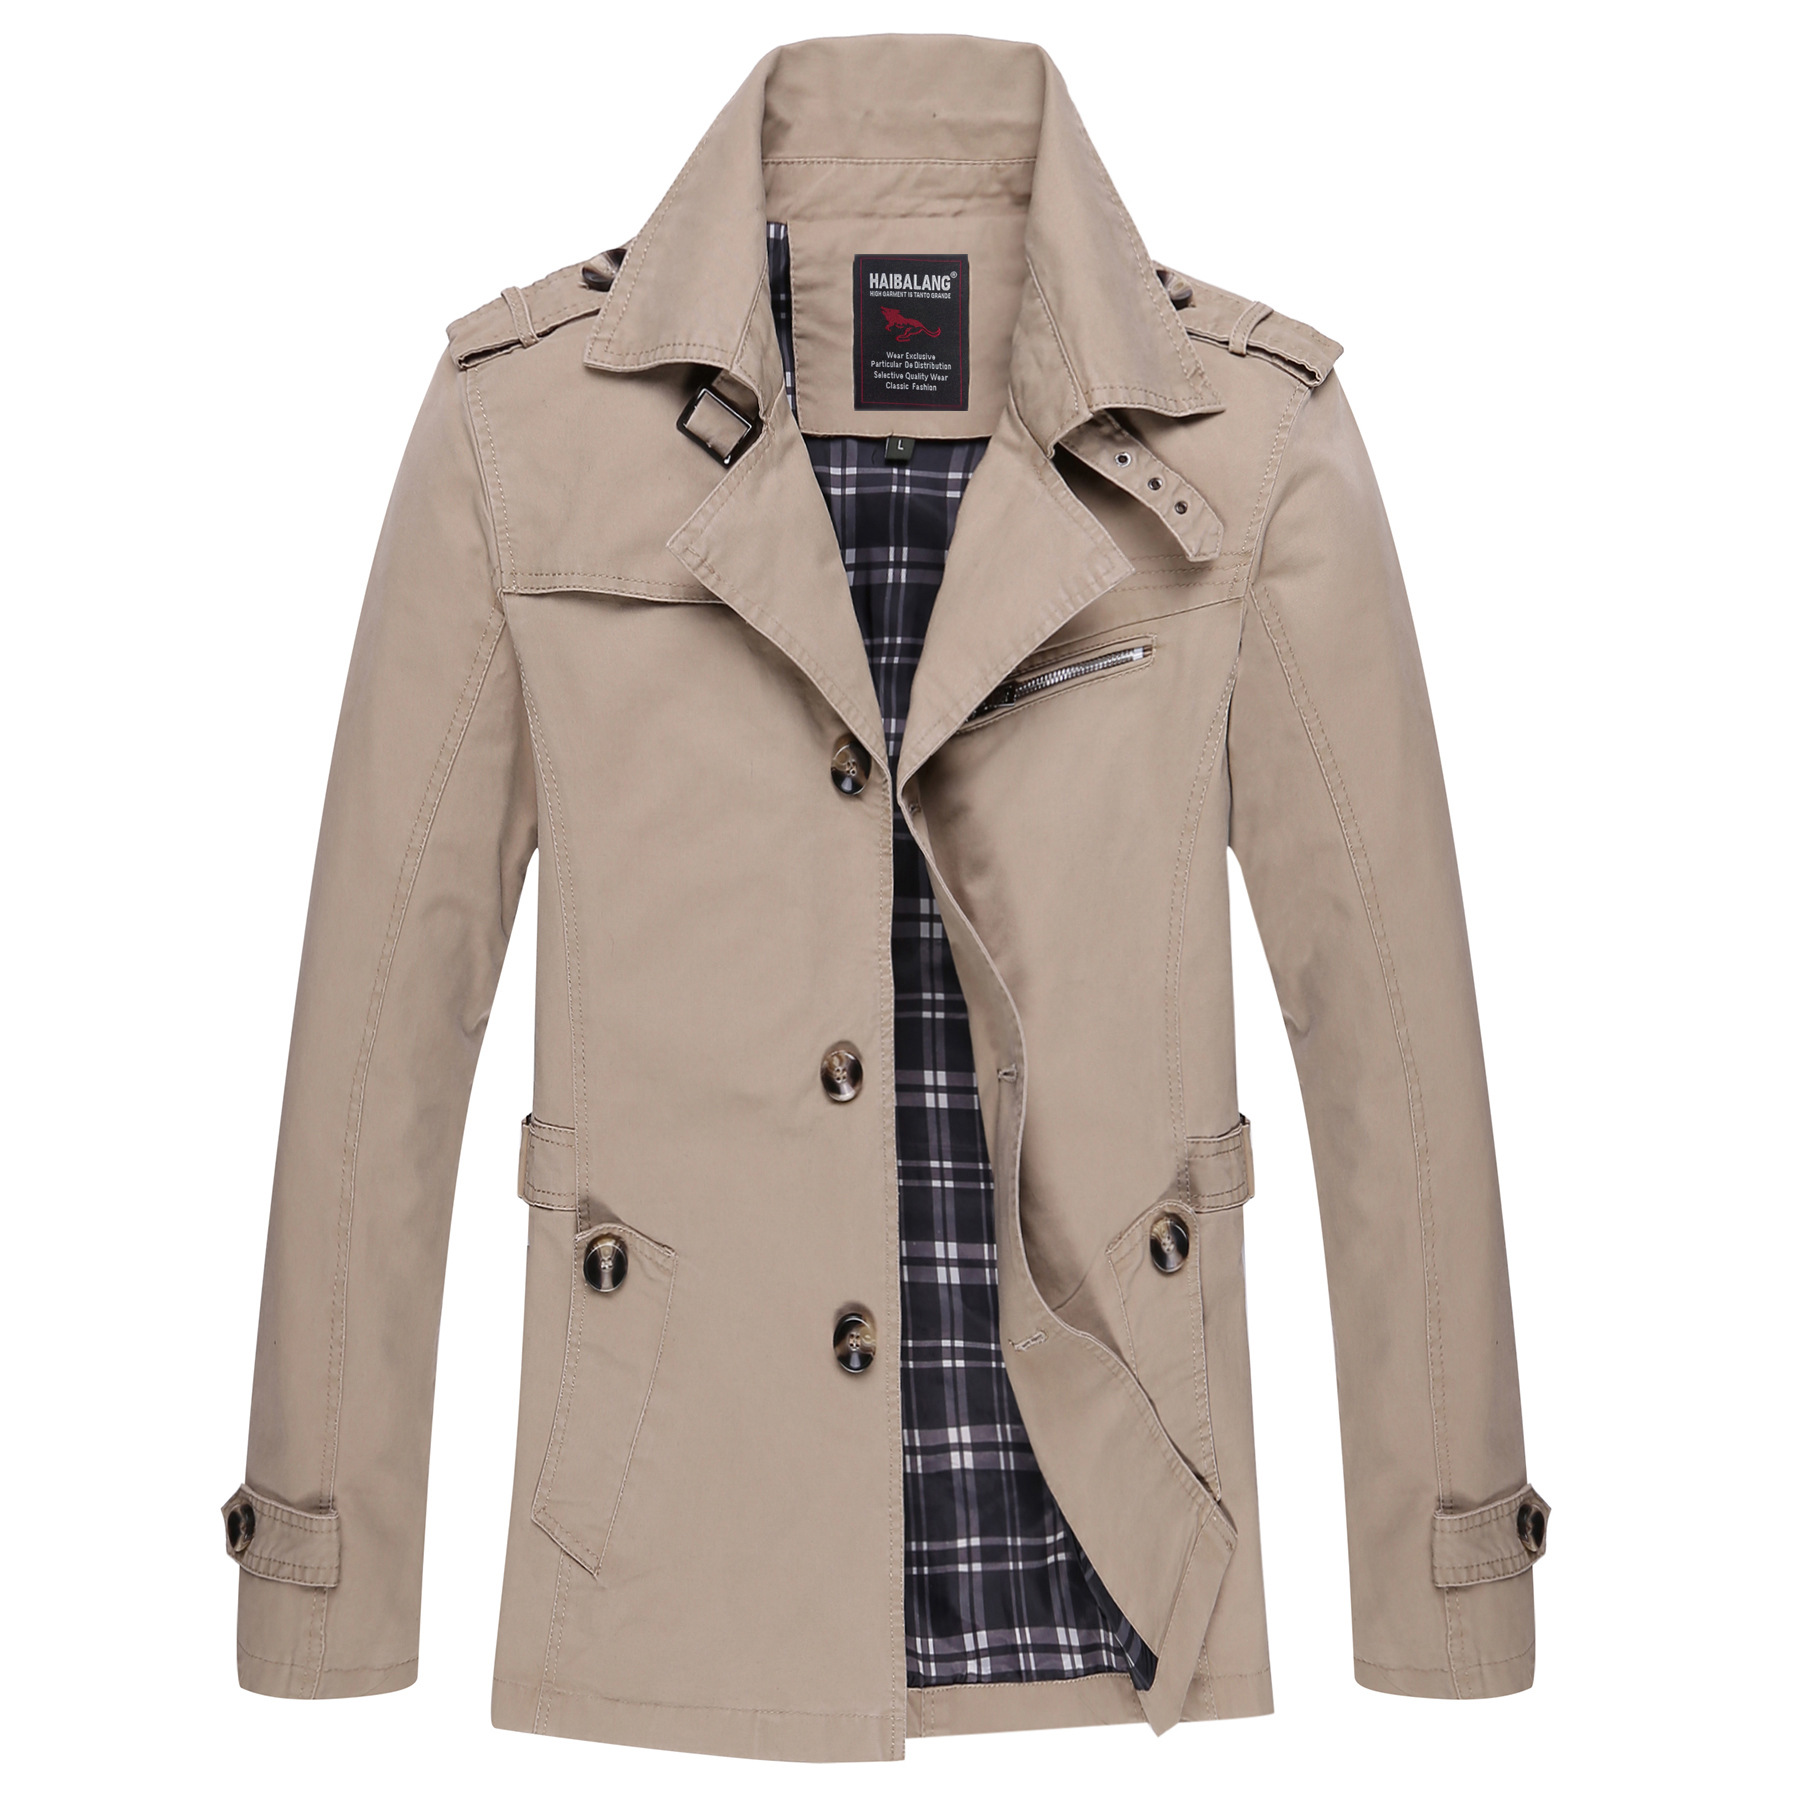 Large Size M-5XL Fall Spring Fashion Men's Cotton Outerwear Jacets. Brand Design Casual Leisure Man's Slim Trench Coats.(China (Mainland))